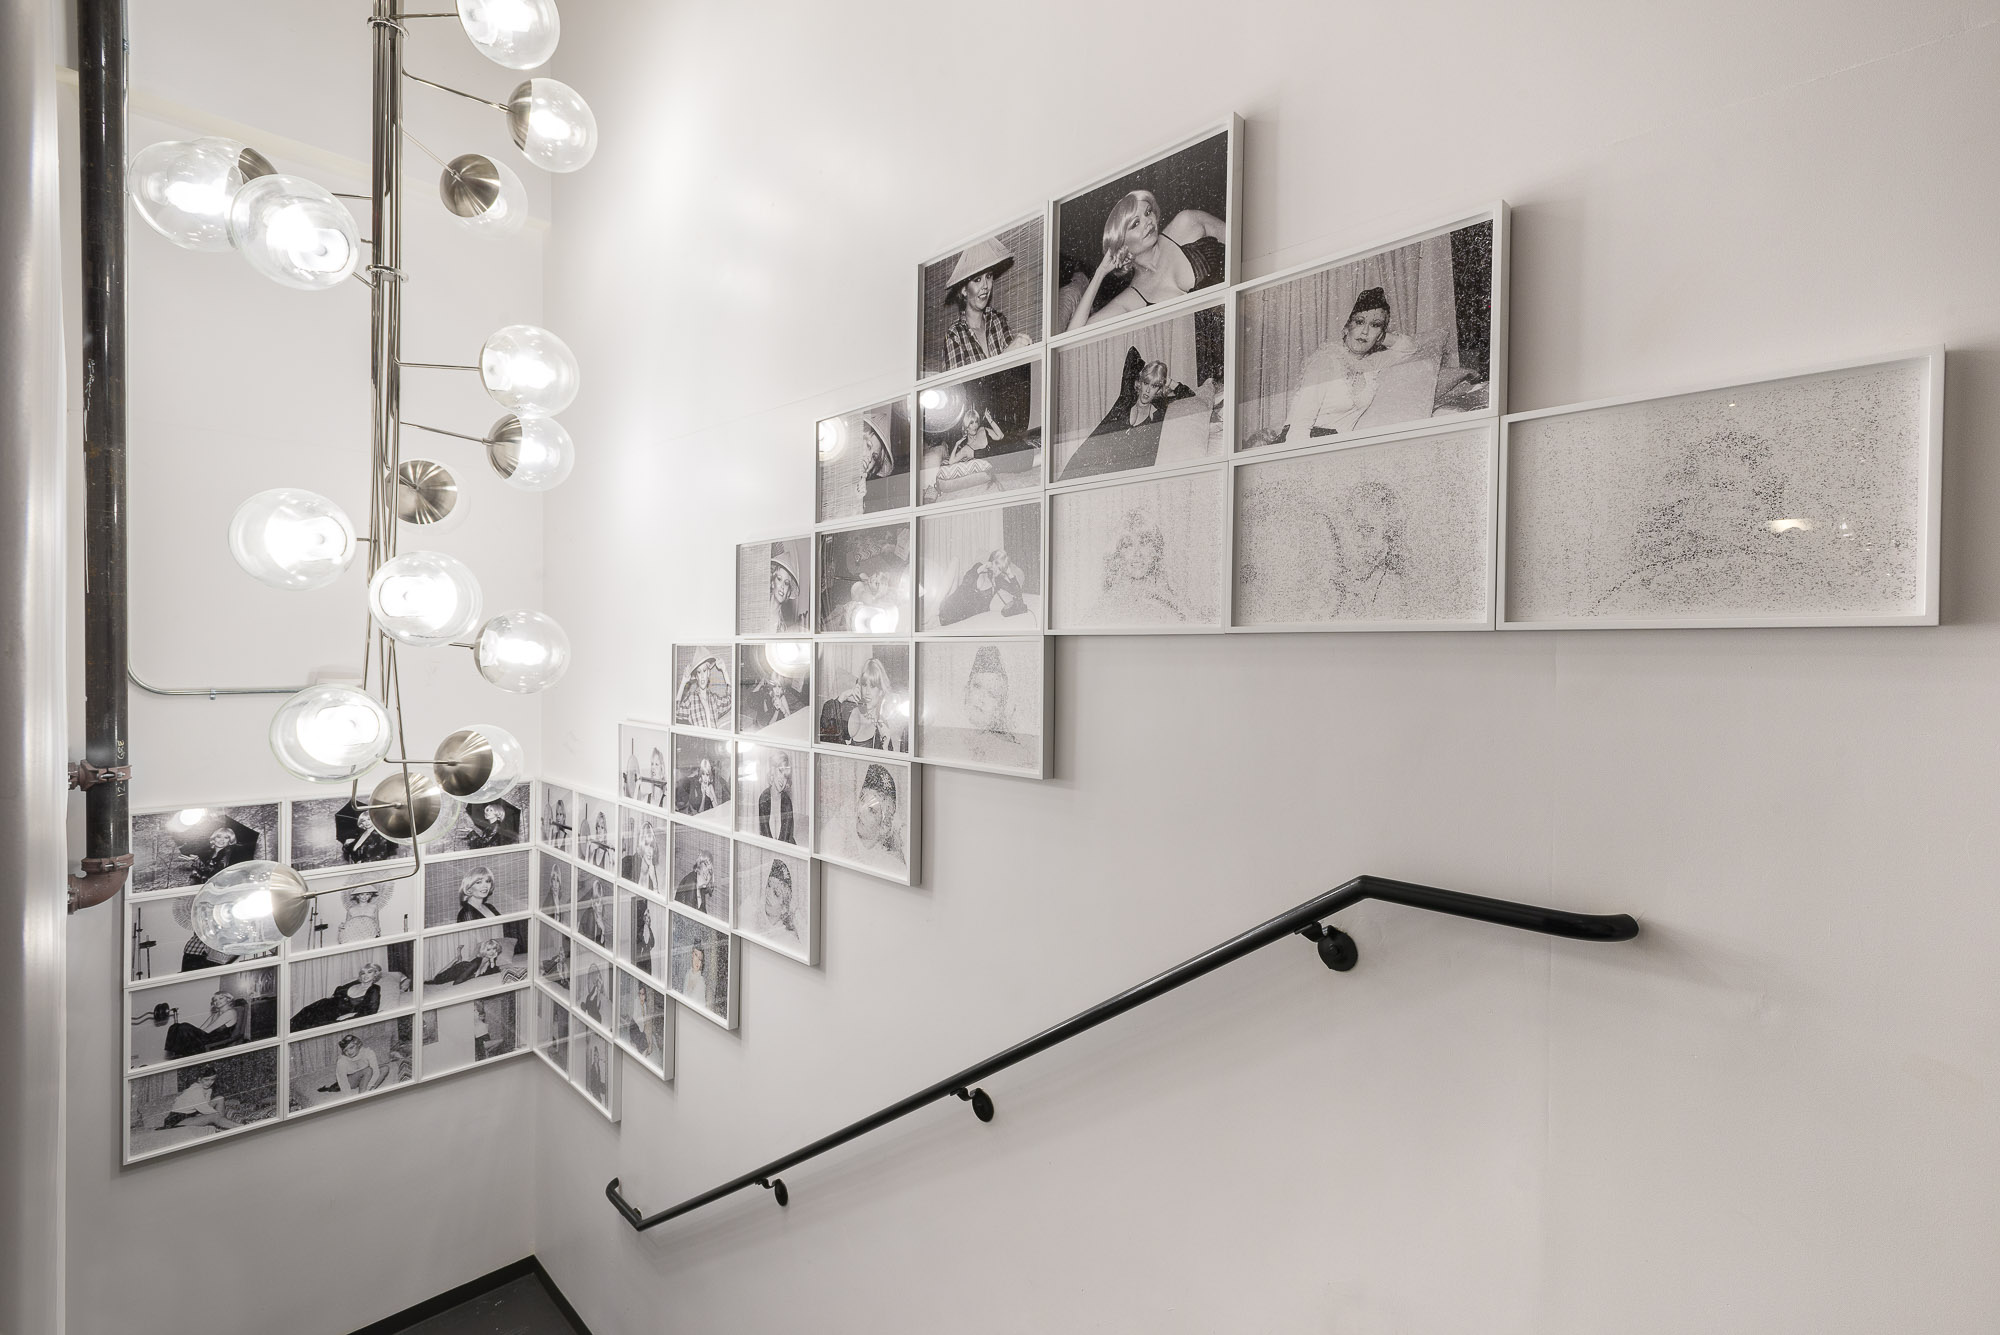 Installation view, APT Collection at NeueHouse Hollywood, Los Angeles, CA, January 2016